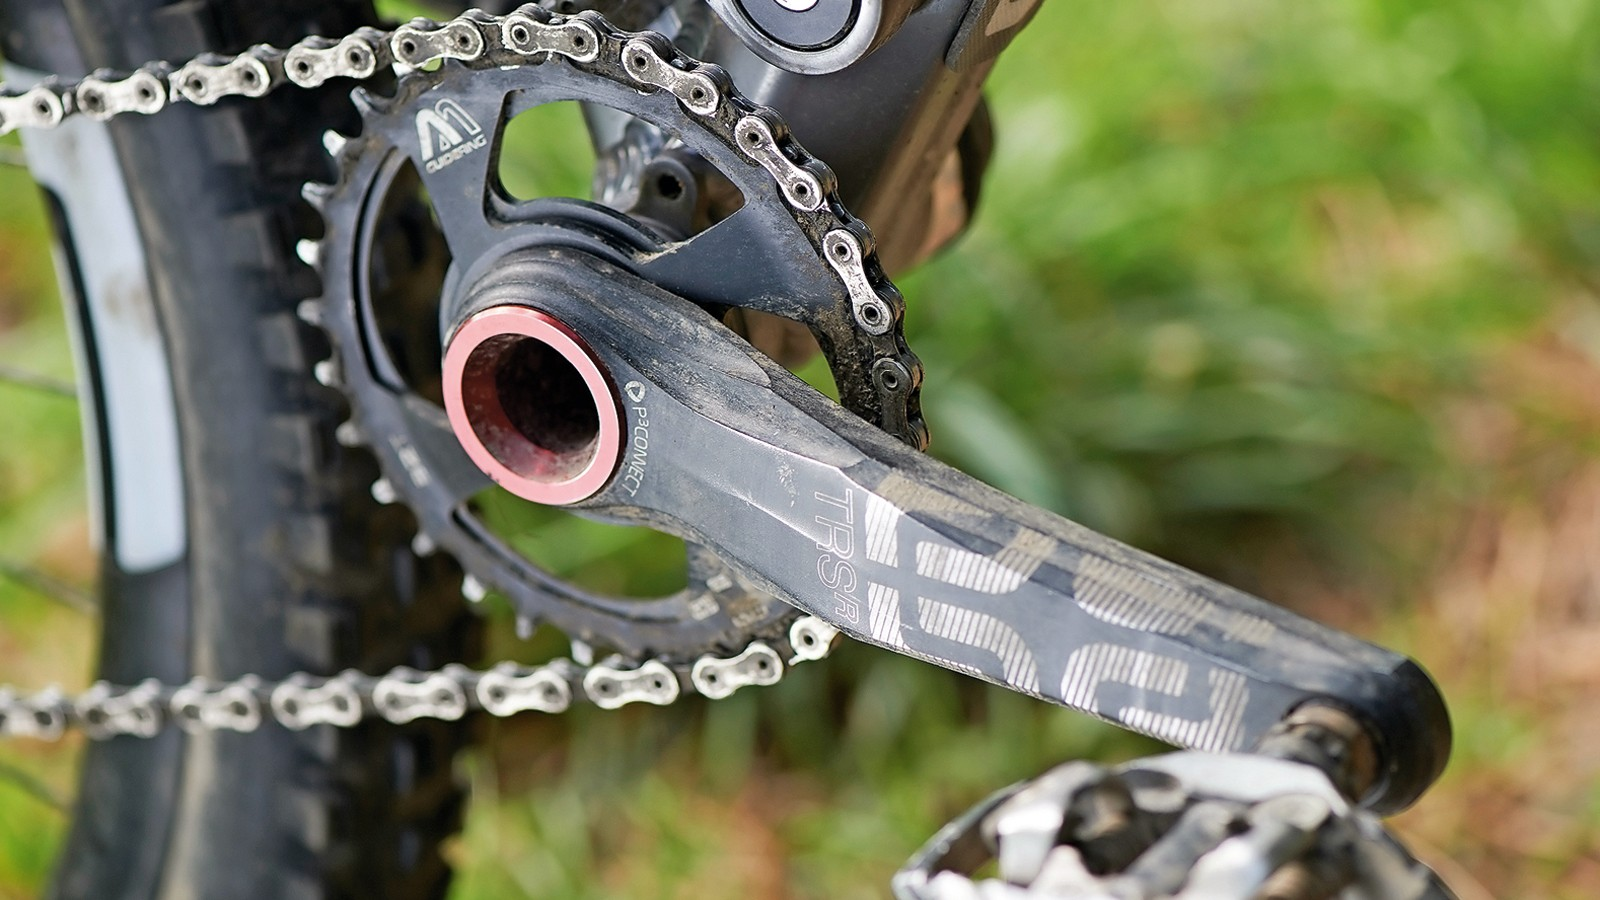 The TRSr cranks are super stiff and light